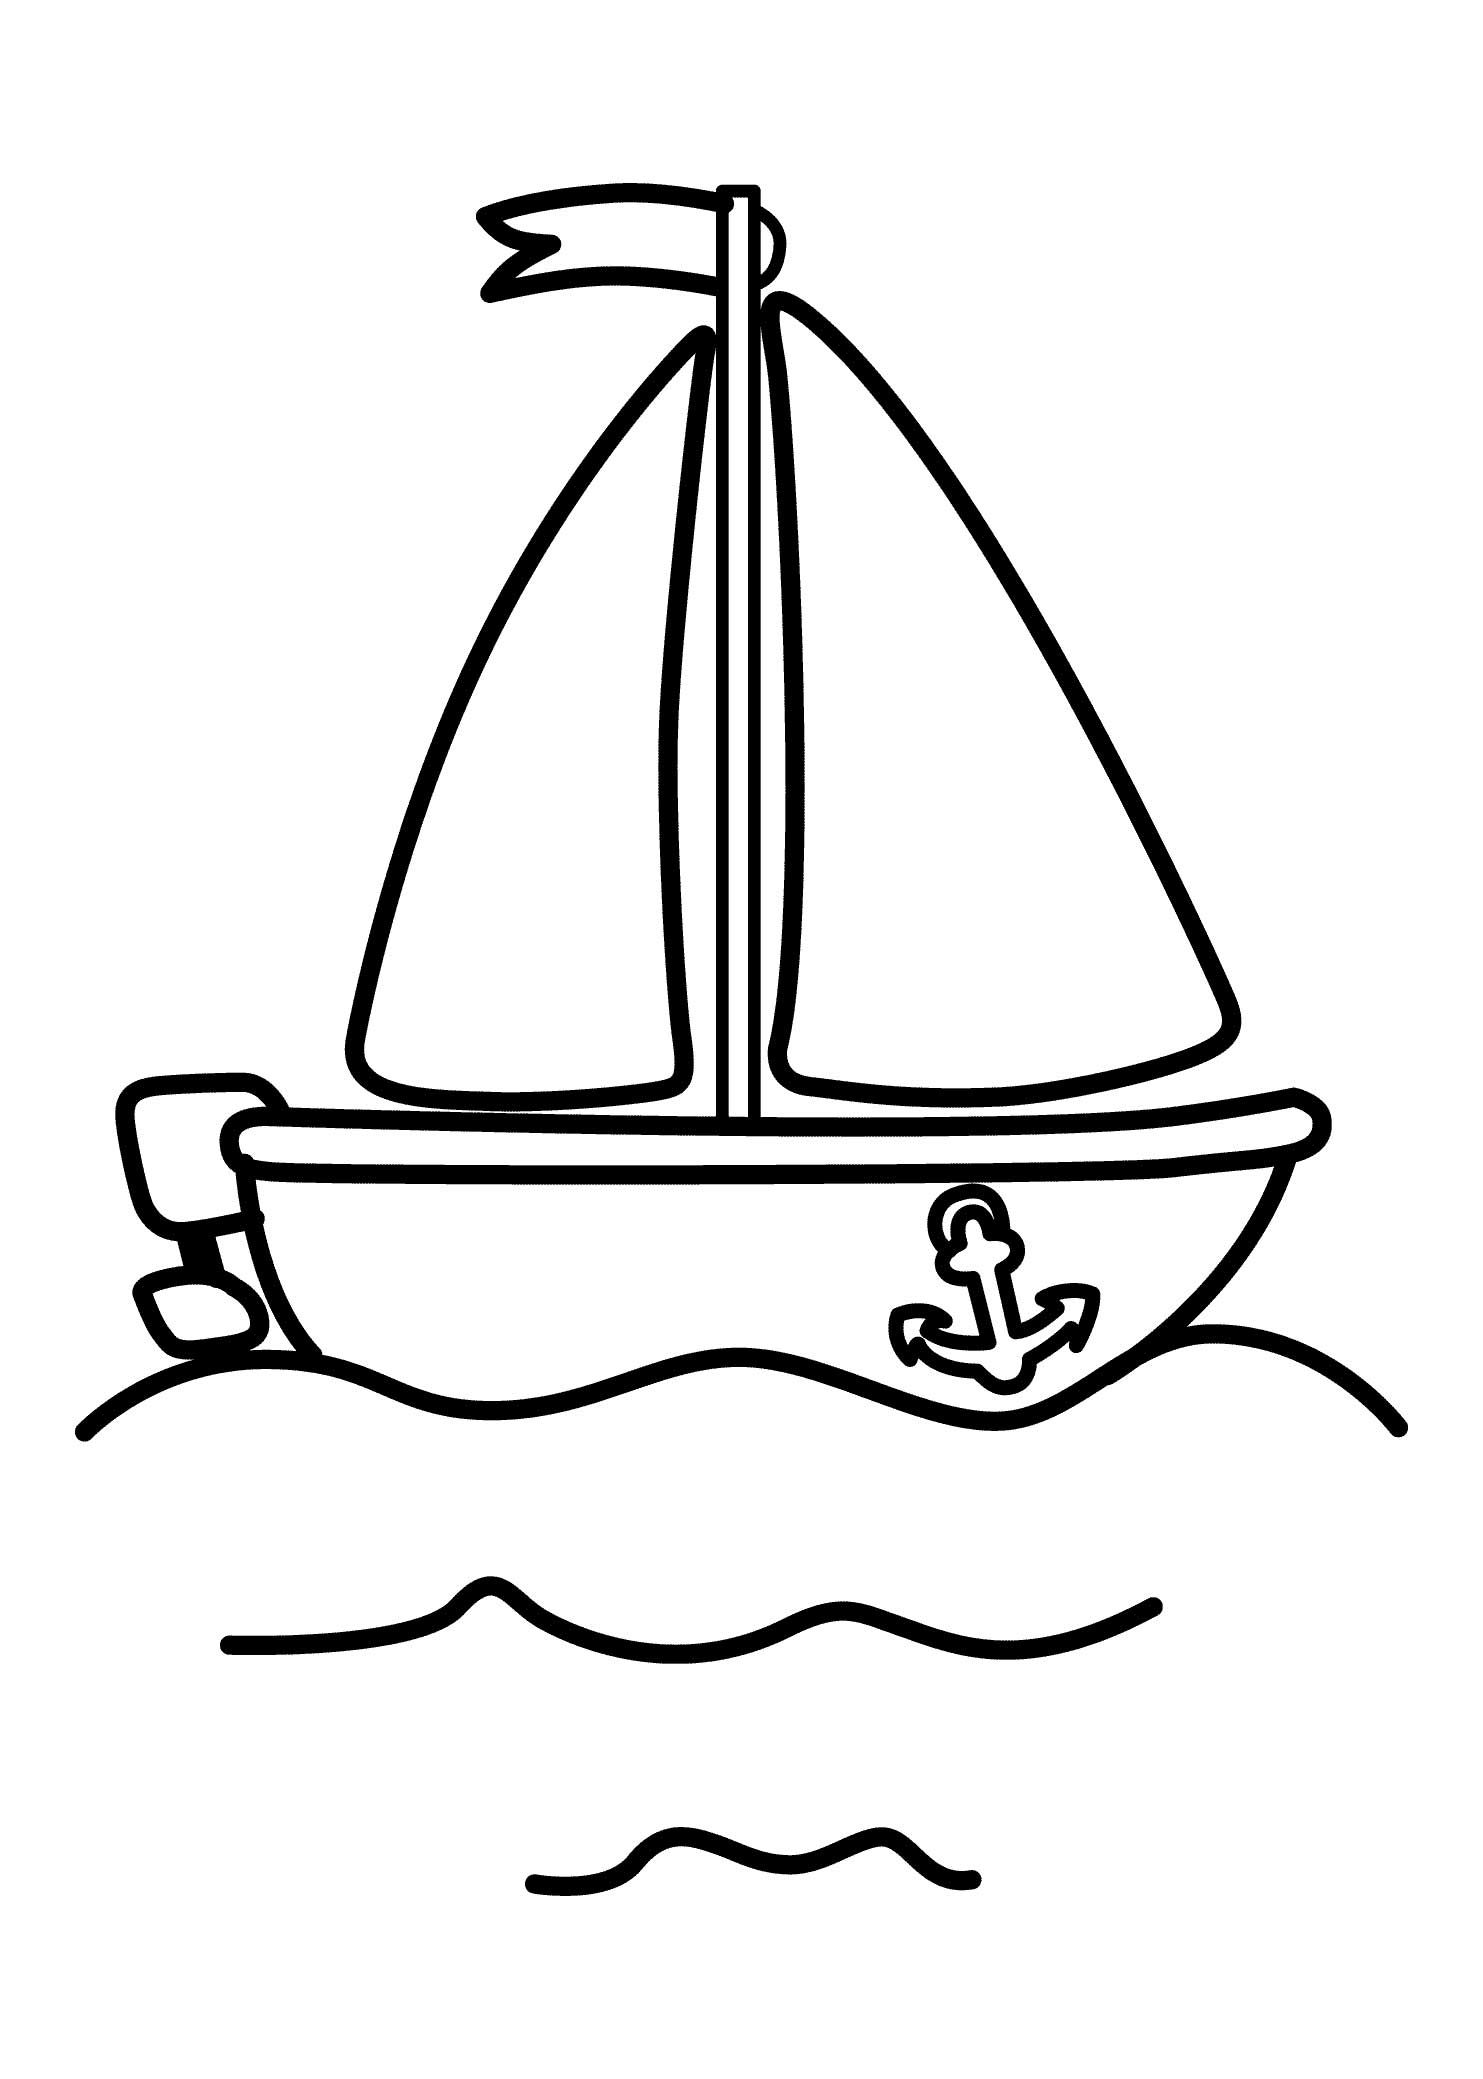 Printable Boat Coloring Pages Free Download Coloring Pages